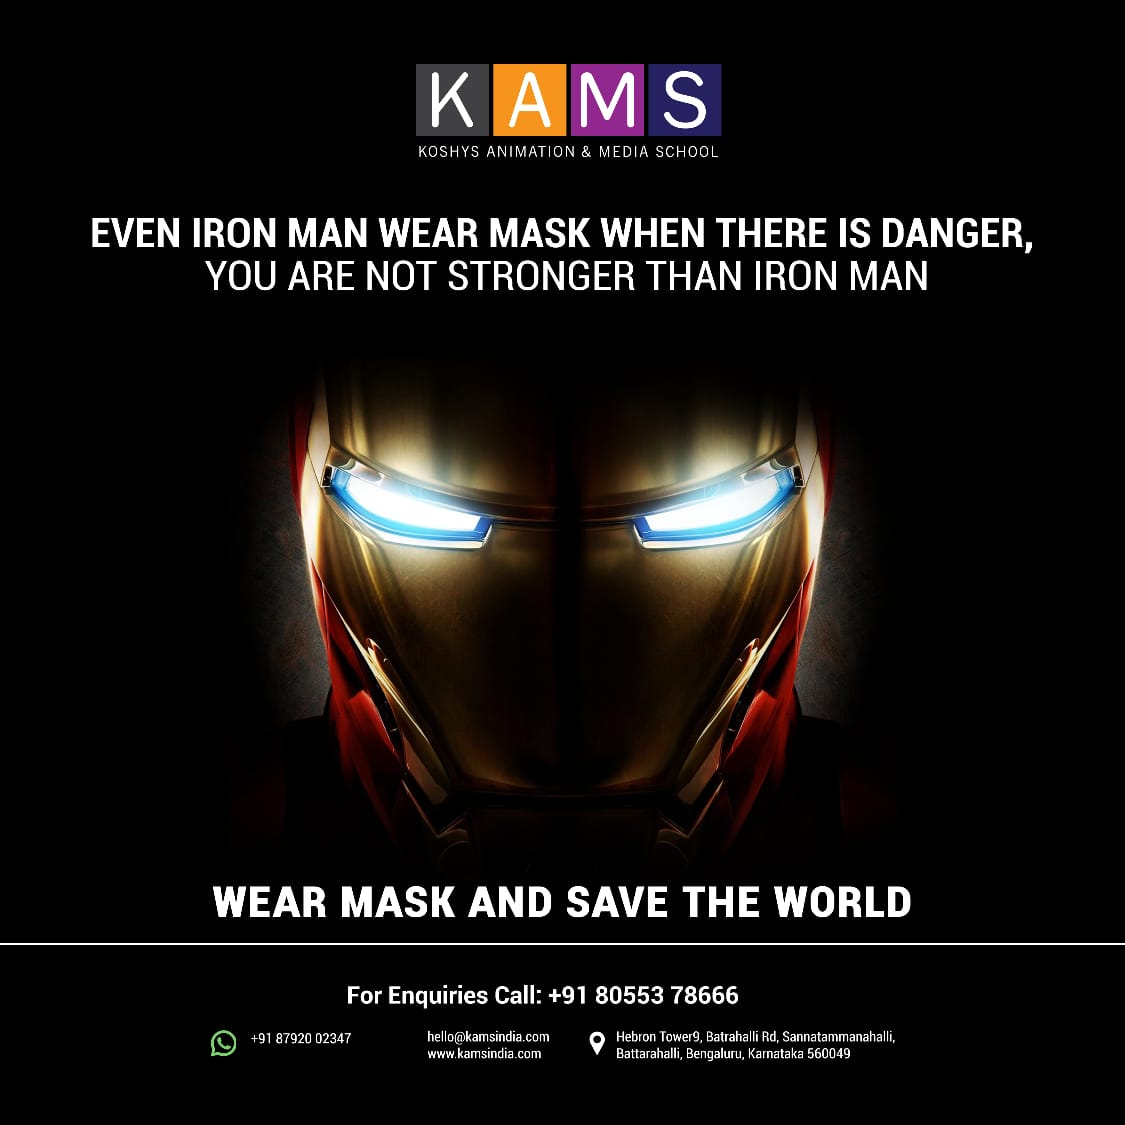 You become a superhero when you act responsibly❗  Wear your mask to stay safe and save the world. 😷🌍  #animation #2D #3D #designcollege #admissions #animationcollege #VFX #graphicdesign #drawing #art #design #kams #bangalore #college https://t.co/TorXmHwzCQ